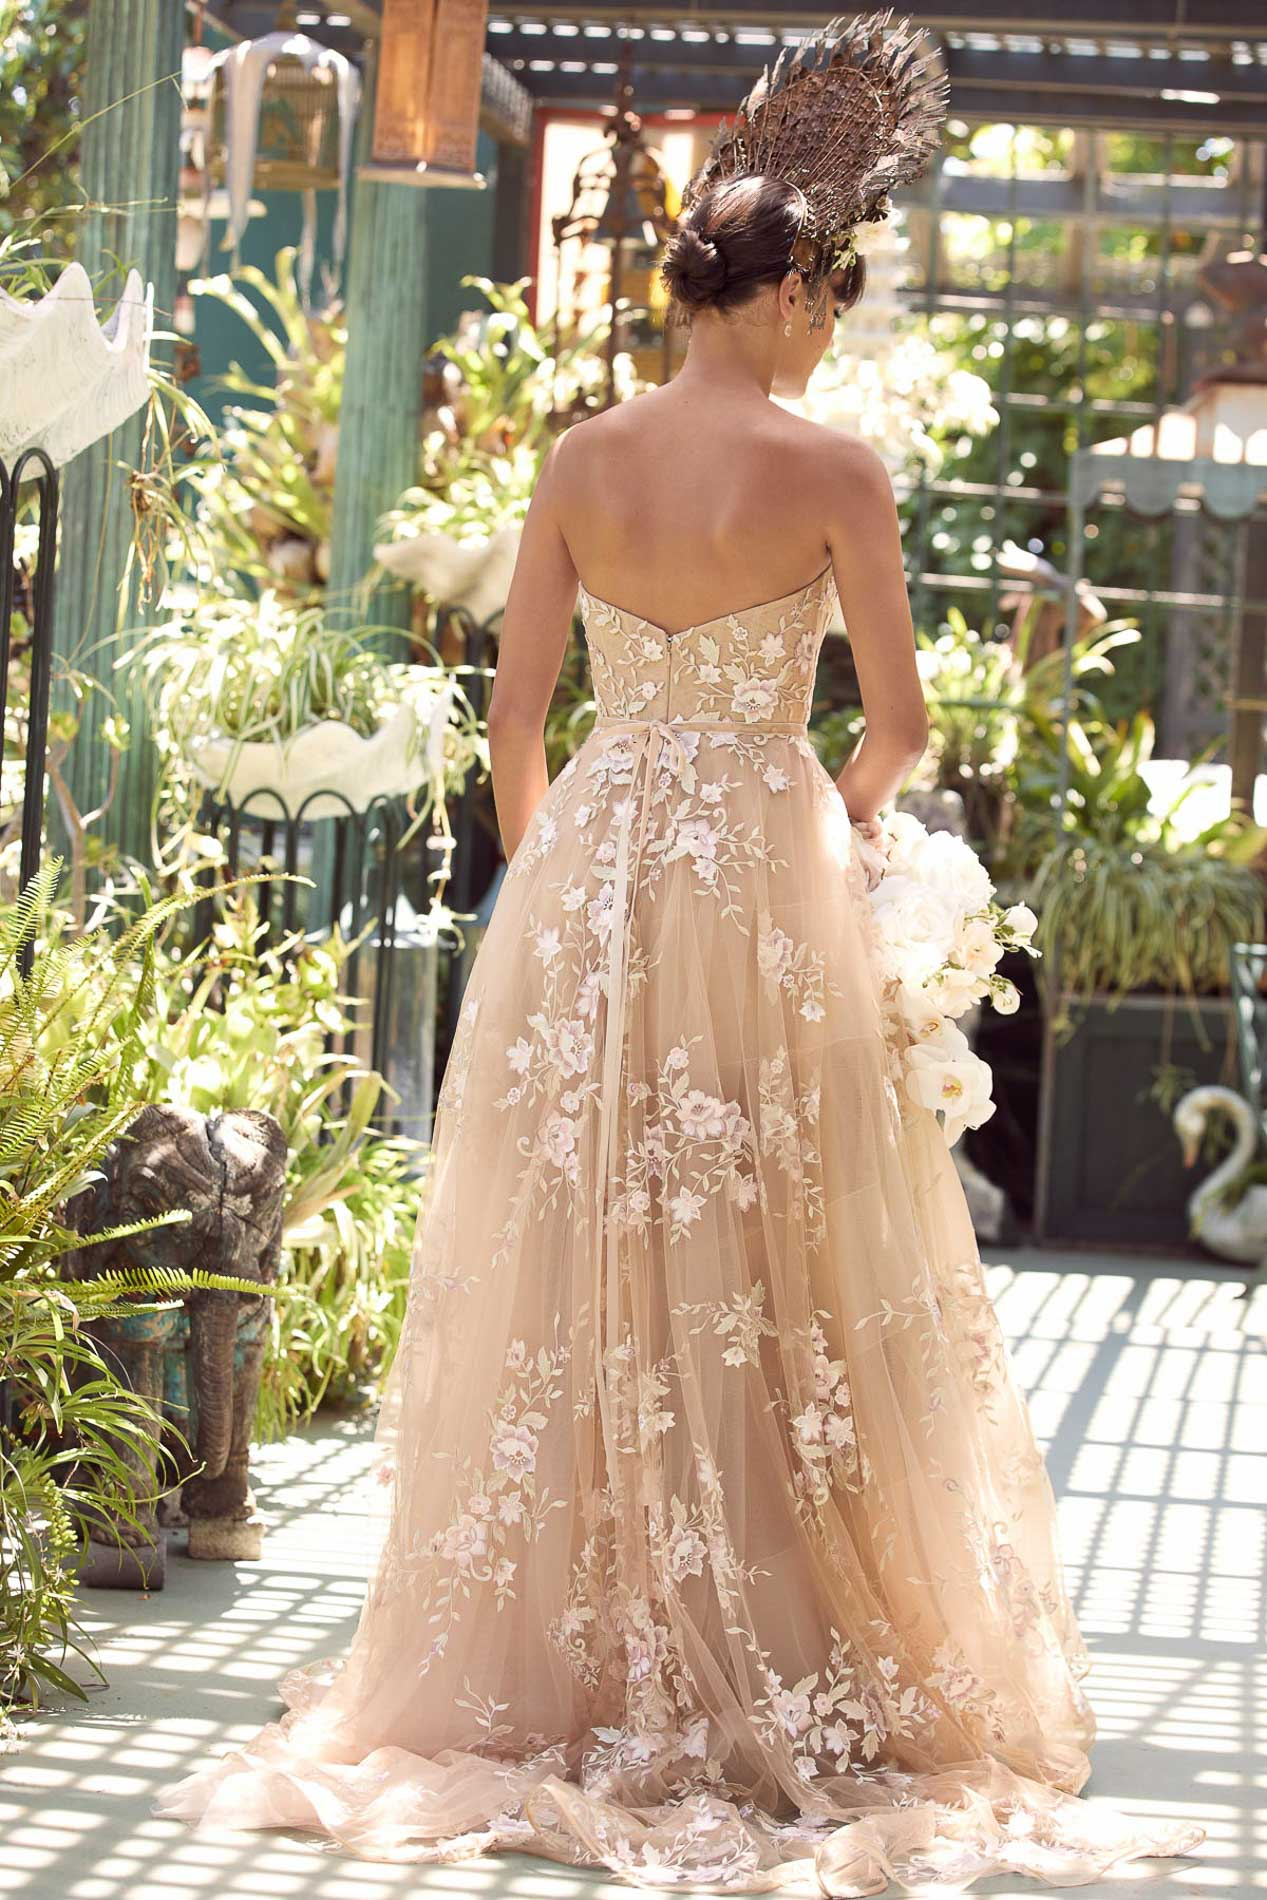 Blush wedding gown, Cabinet of Wonders, an exclusive Watters WTOO event